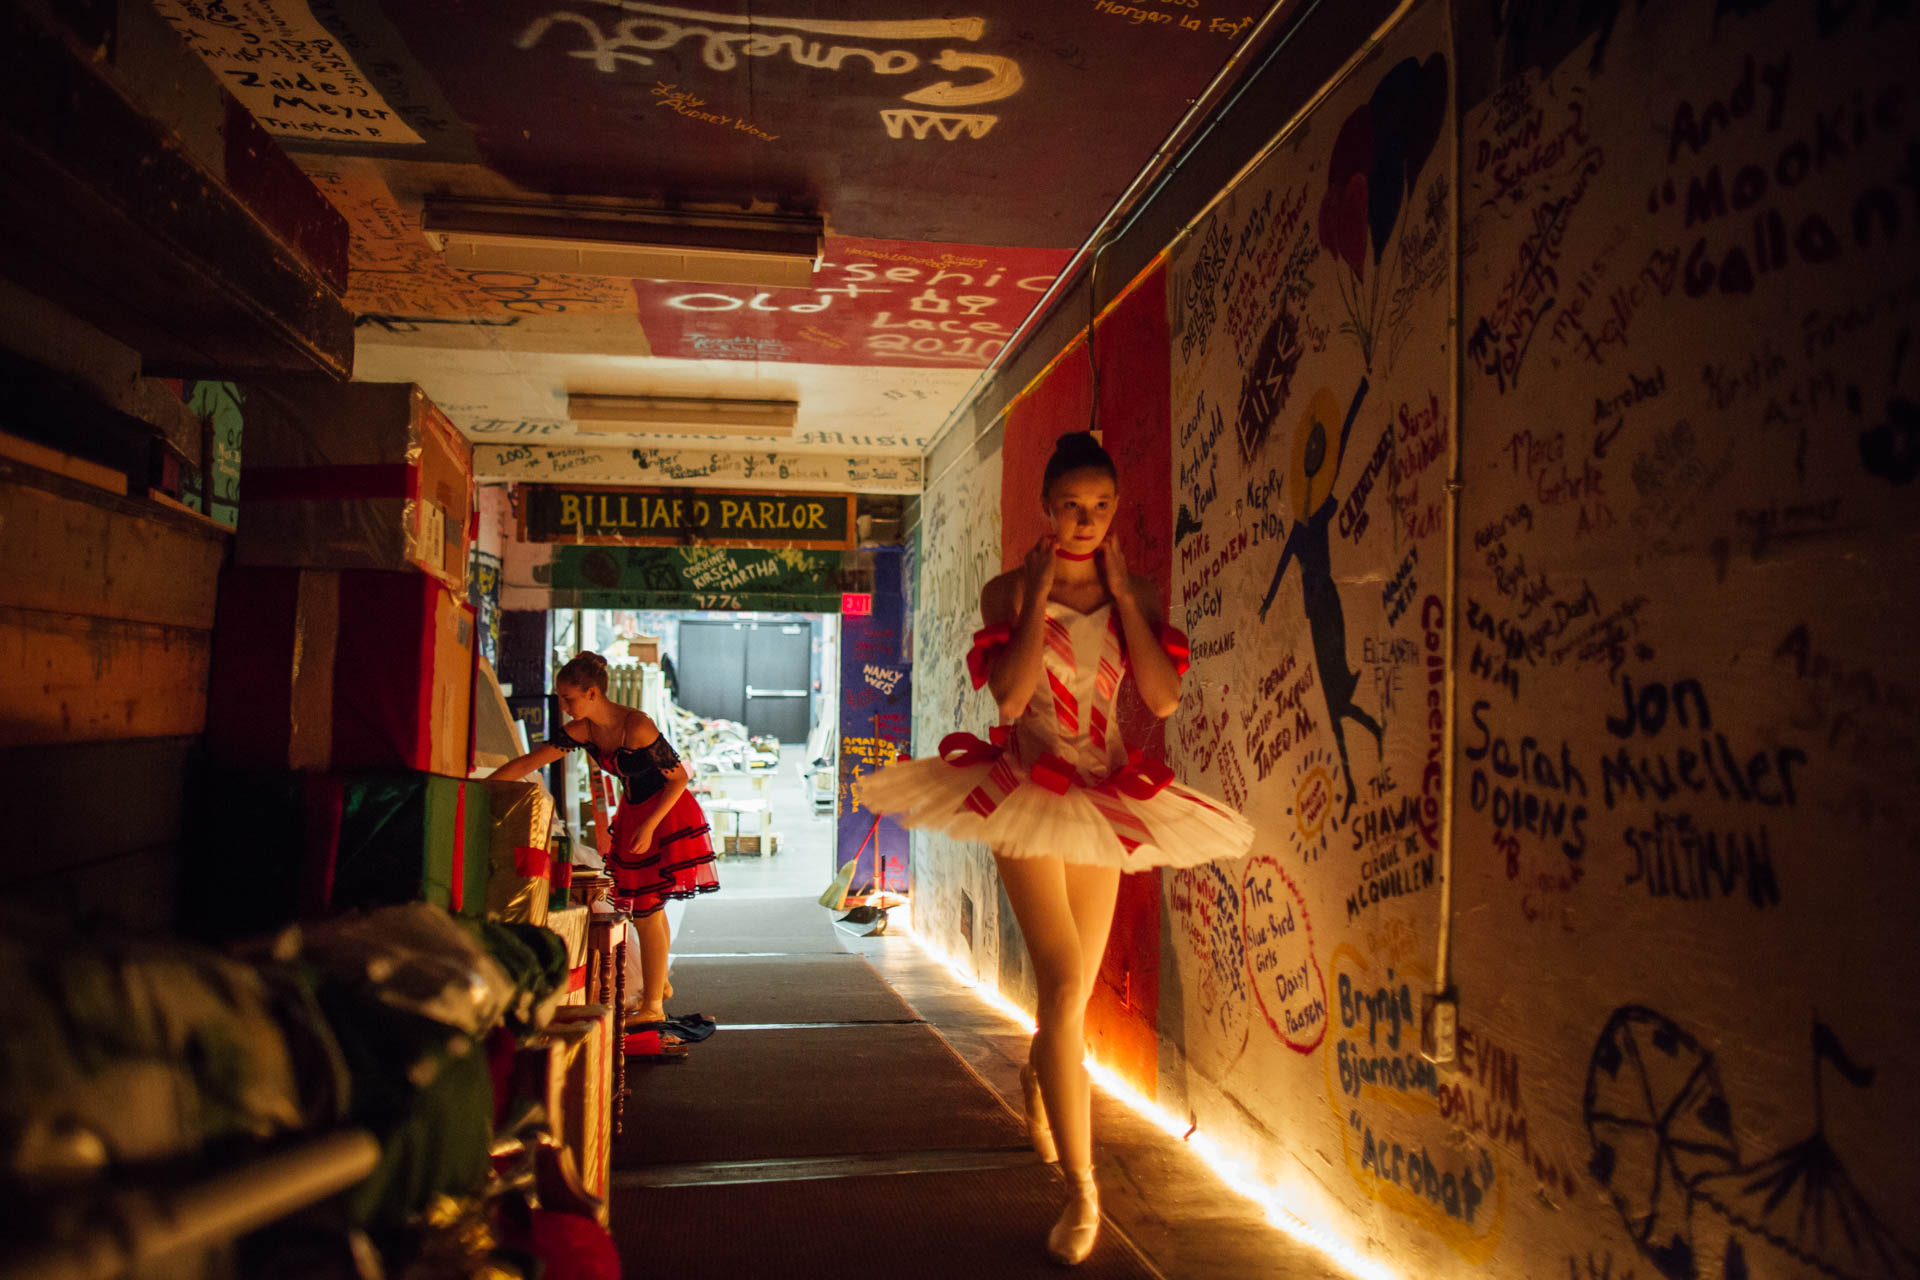 nutcracker-candy-cane-ballerina-backstage-5858